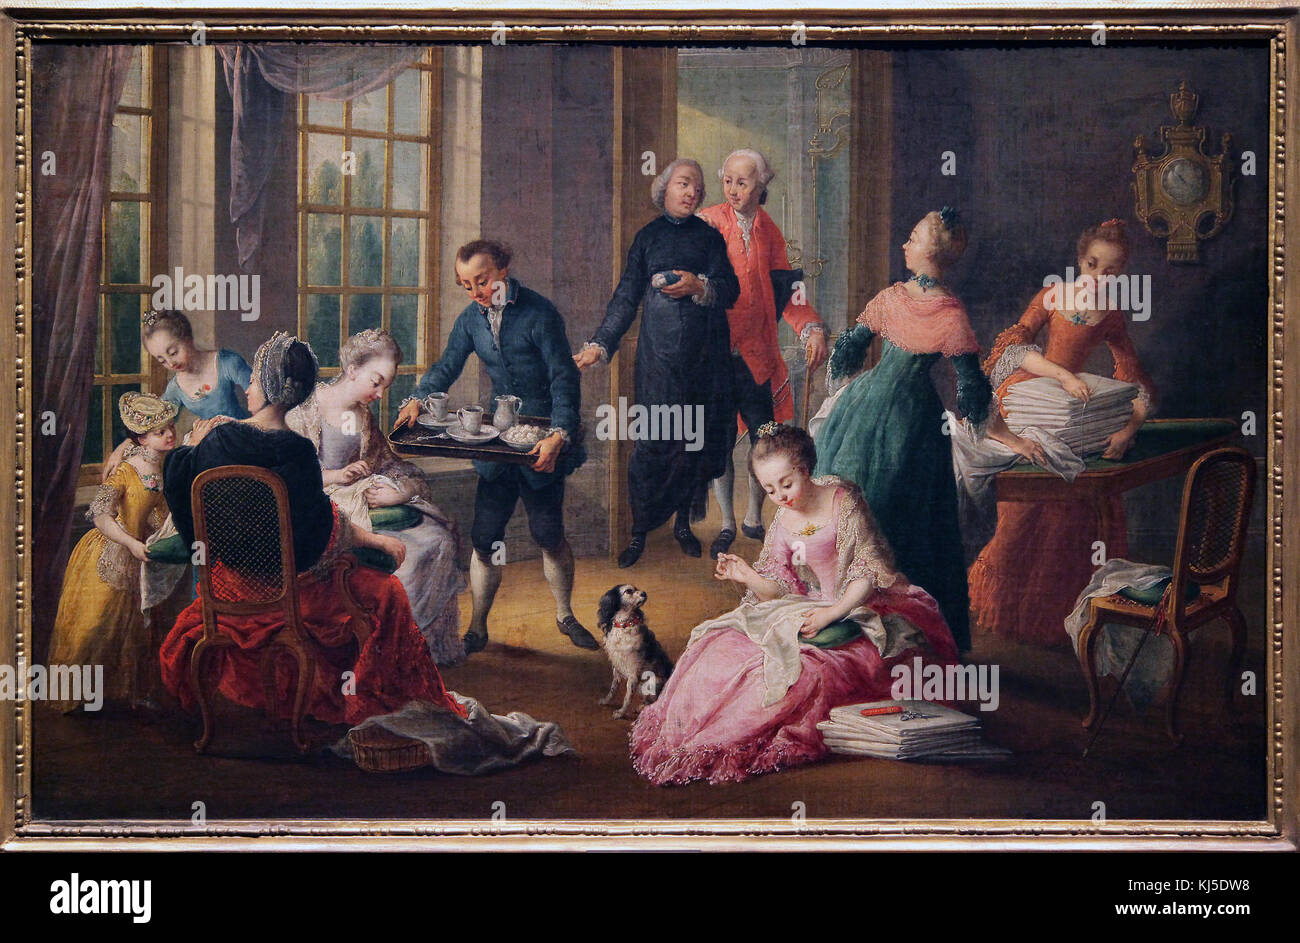 Afternoon tea by Jan Anton Garemijn 1712-1799 Flemish painter and engraver - Stock Image